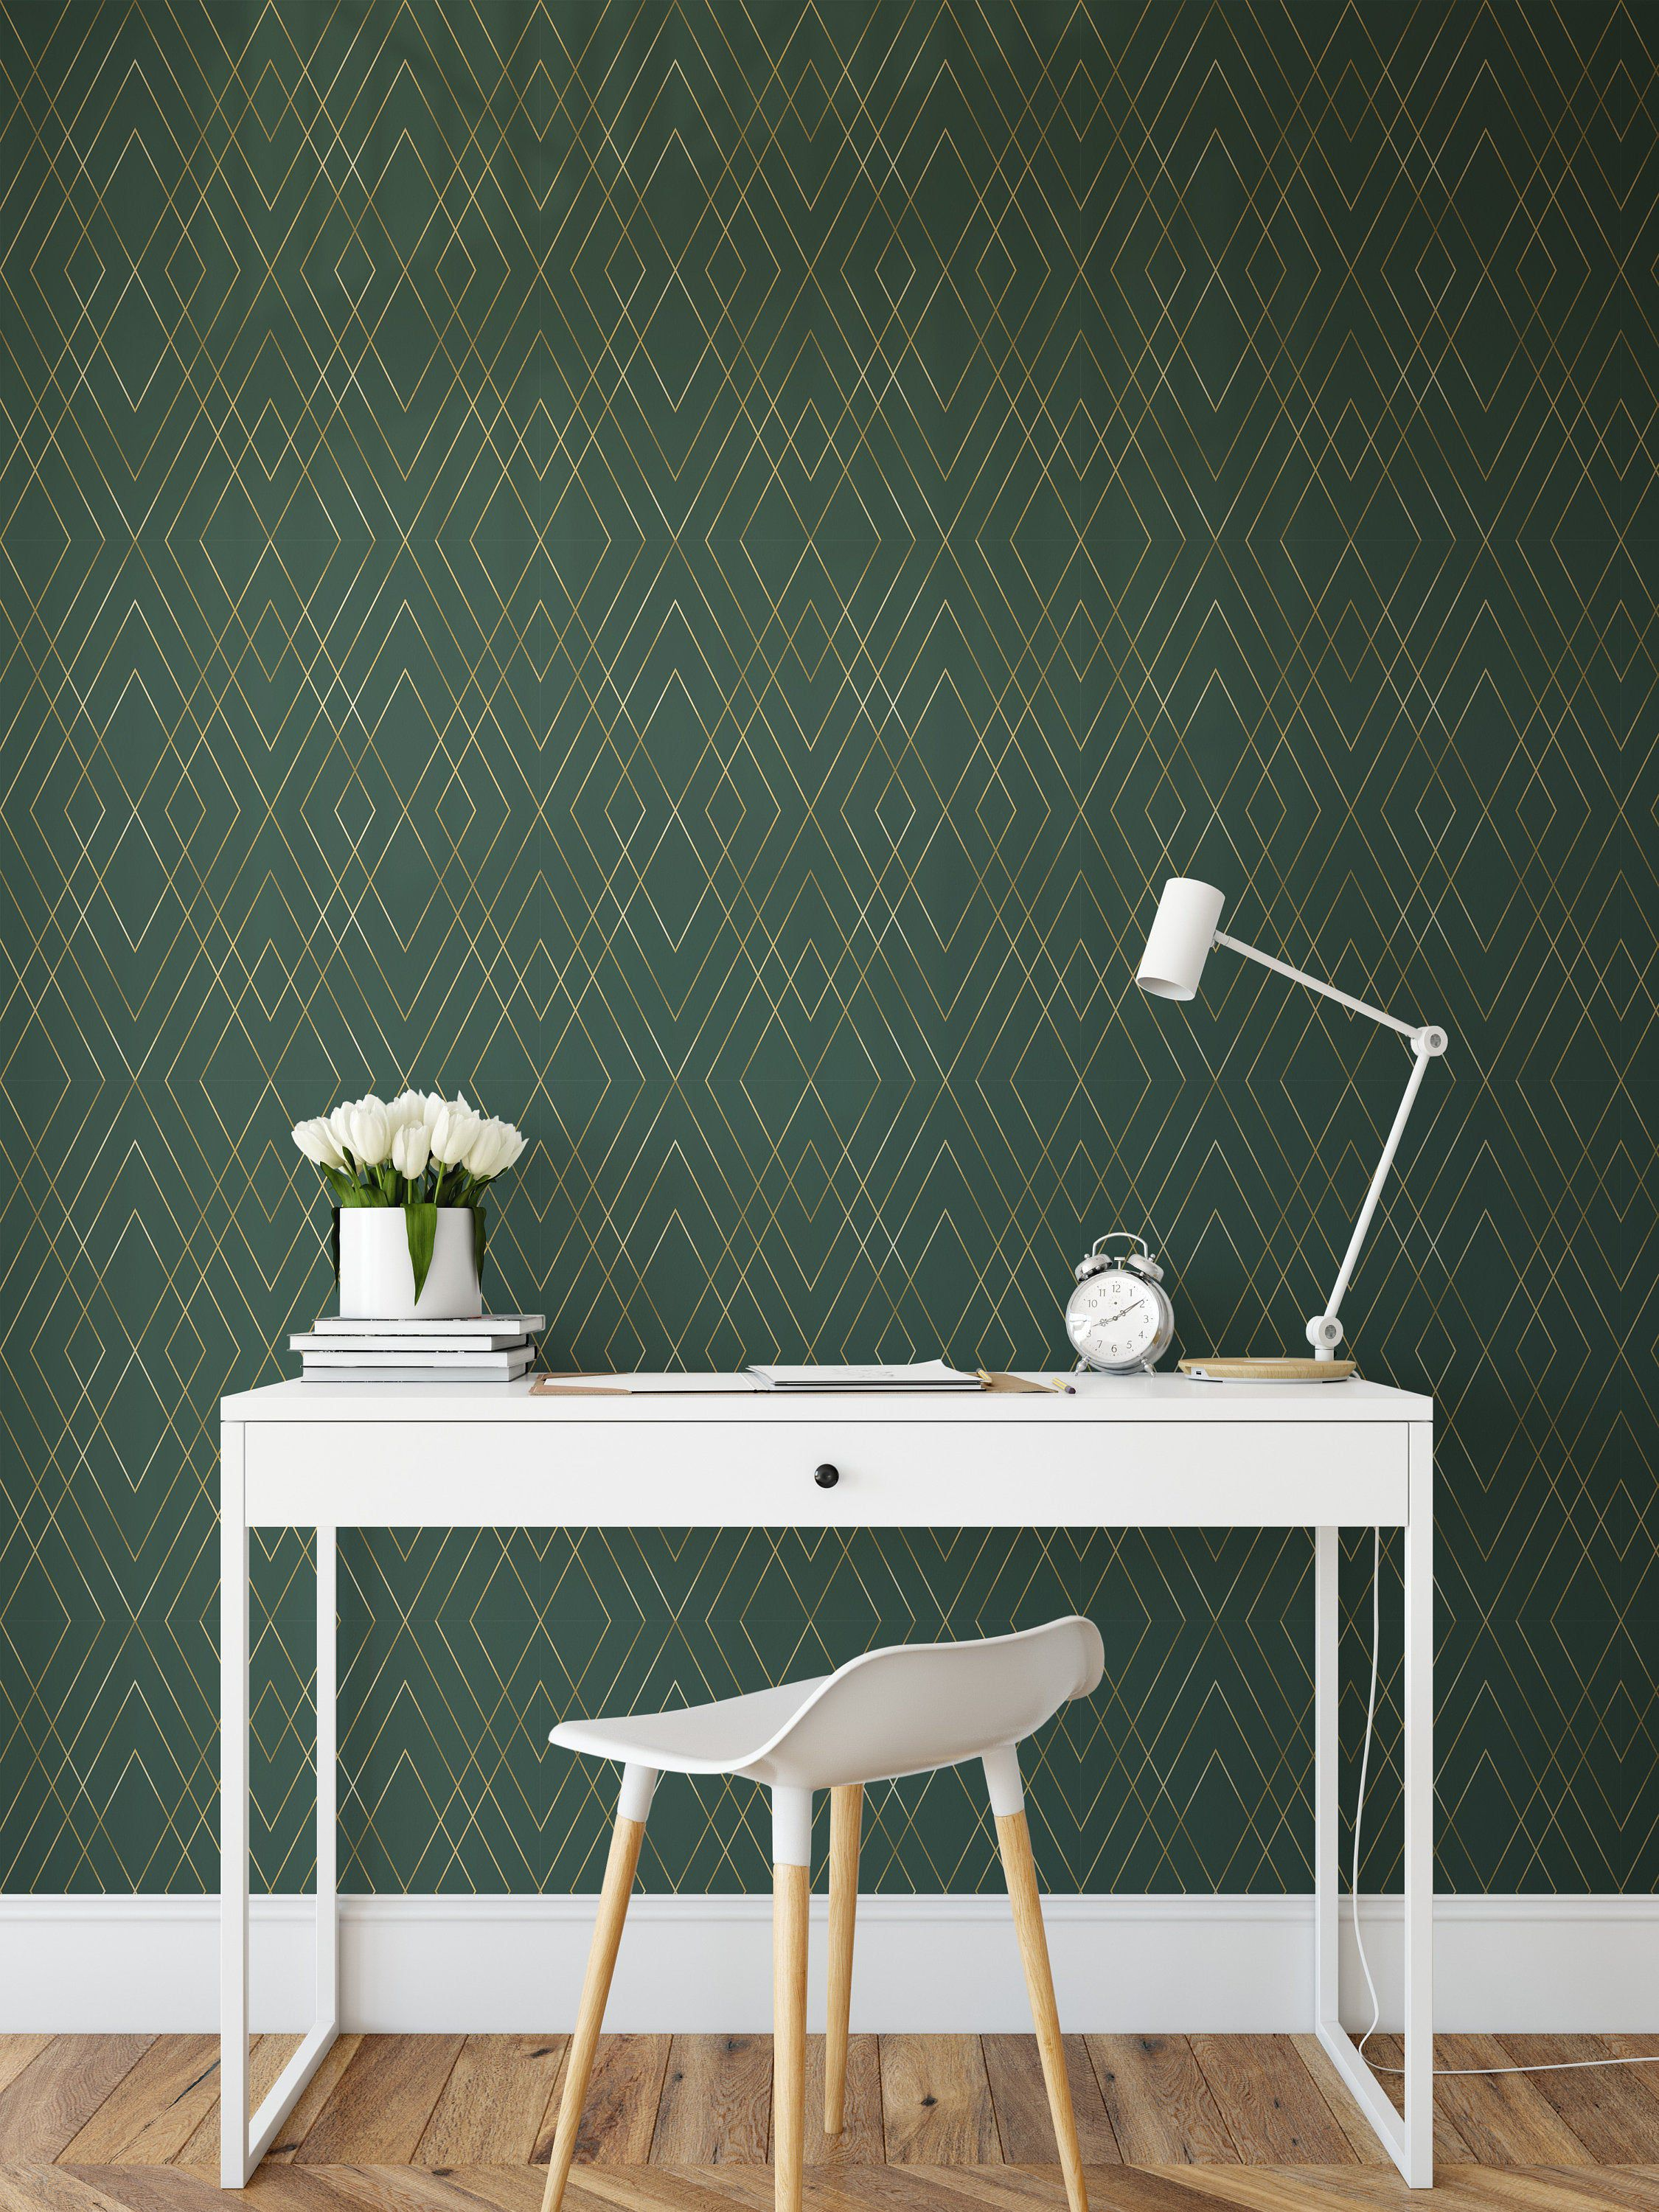 Green Gold Peel And Stick Wallpaper Self Adhesive Geometric Wallpaper Accent Wall Contact Paper Removable Wallpaper 70 Accent Walls In Living Room Green Accent Walls Peel And Stick Wallpaper